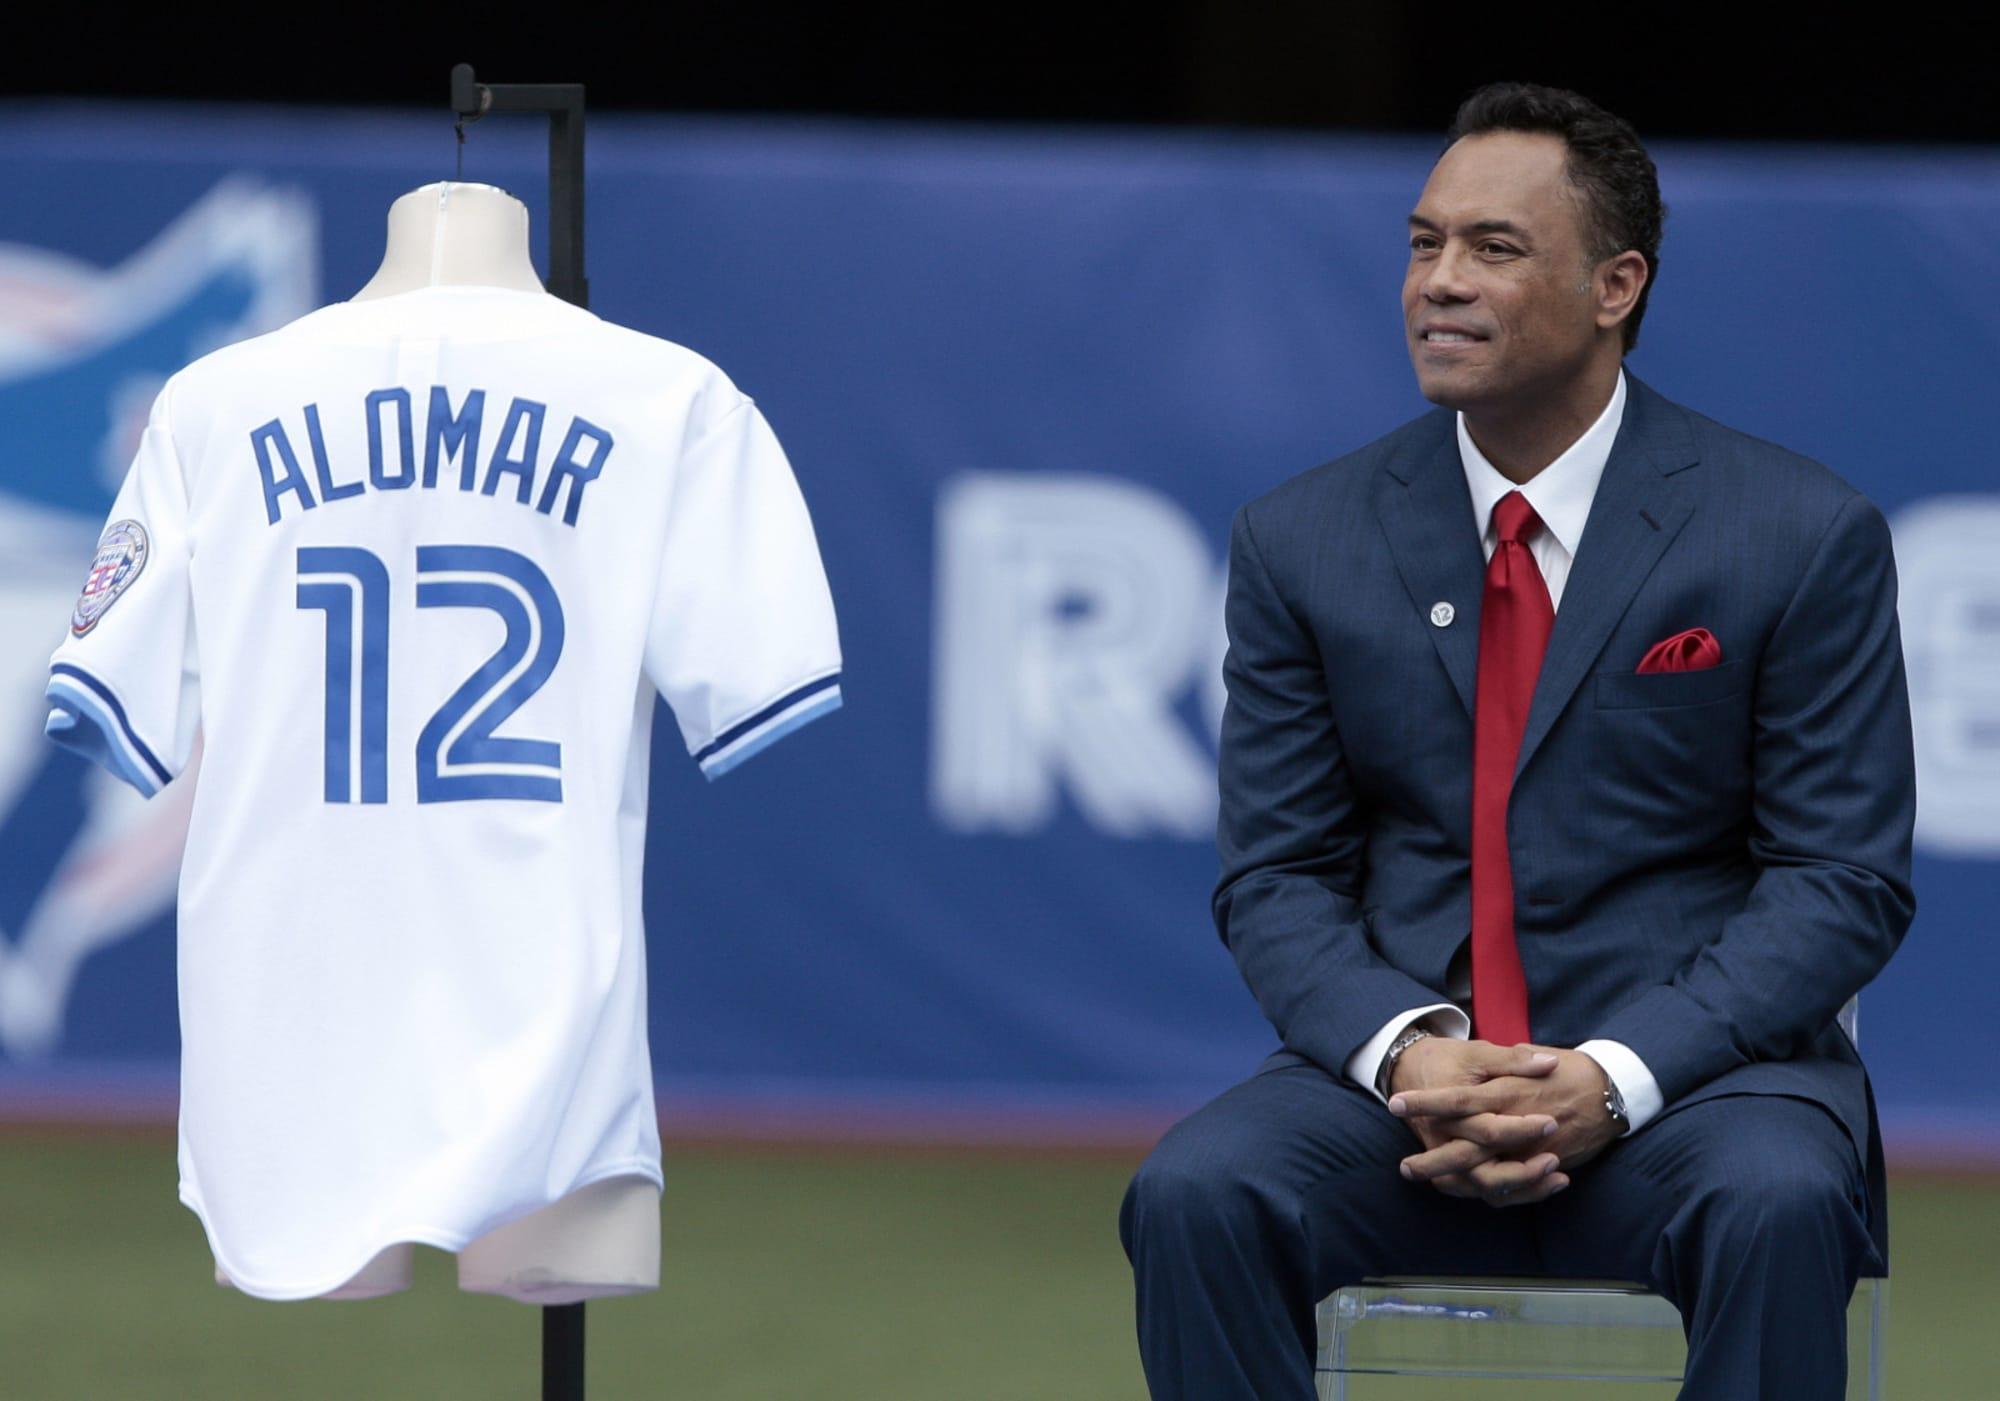 Toronto Raptors should learn from Blue Jays' response to Roberto Alomar